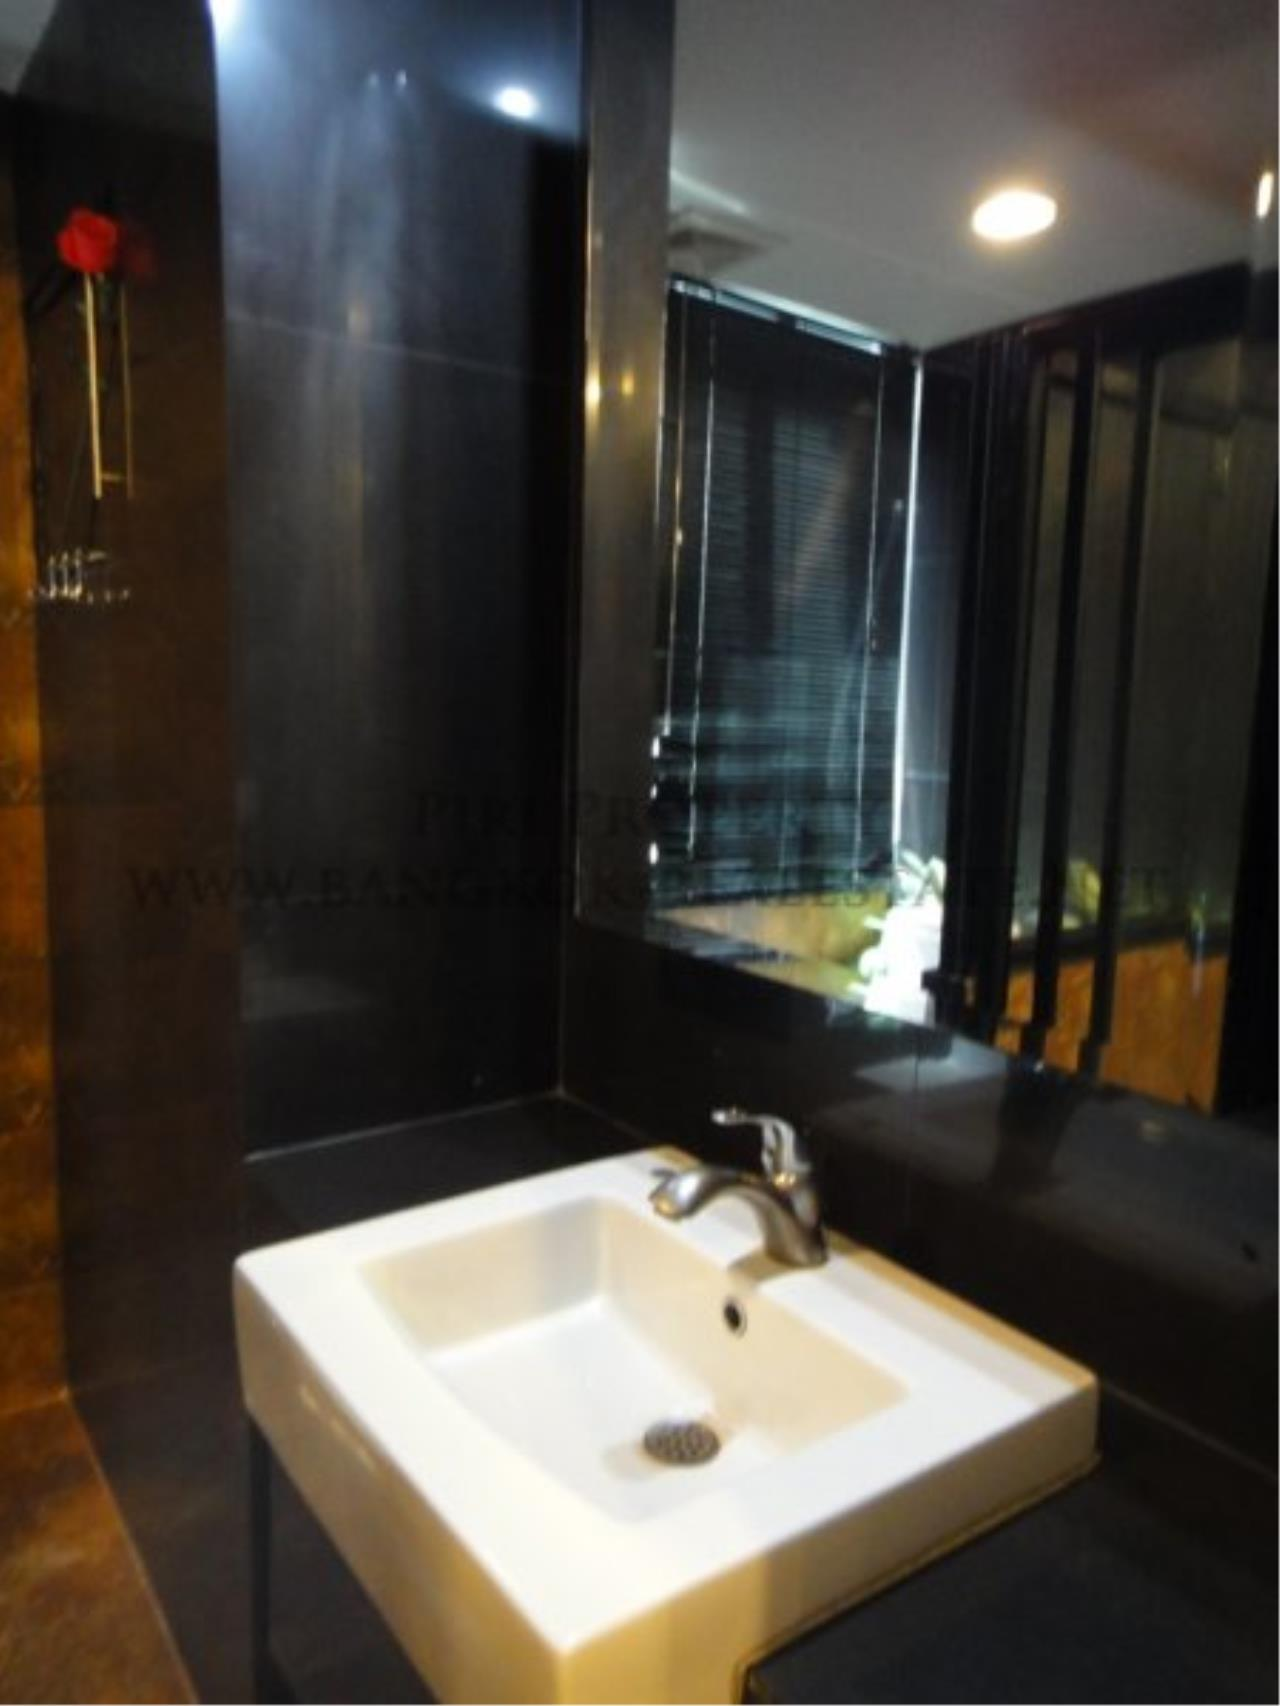 Piri Property Agency's Baan Phrom Phong - 2 Bedroom Condo for Sale - RENOVATED! 14